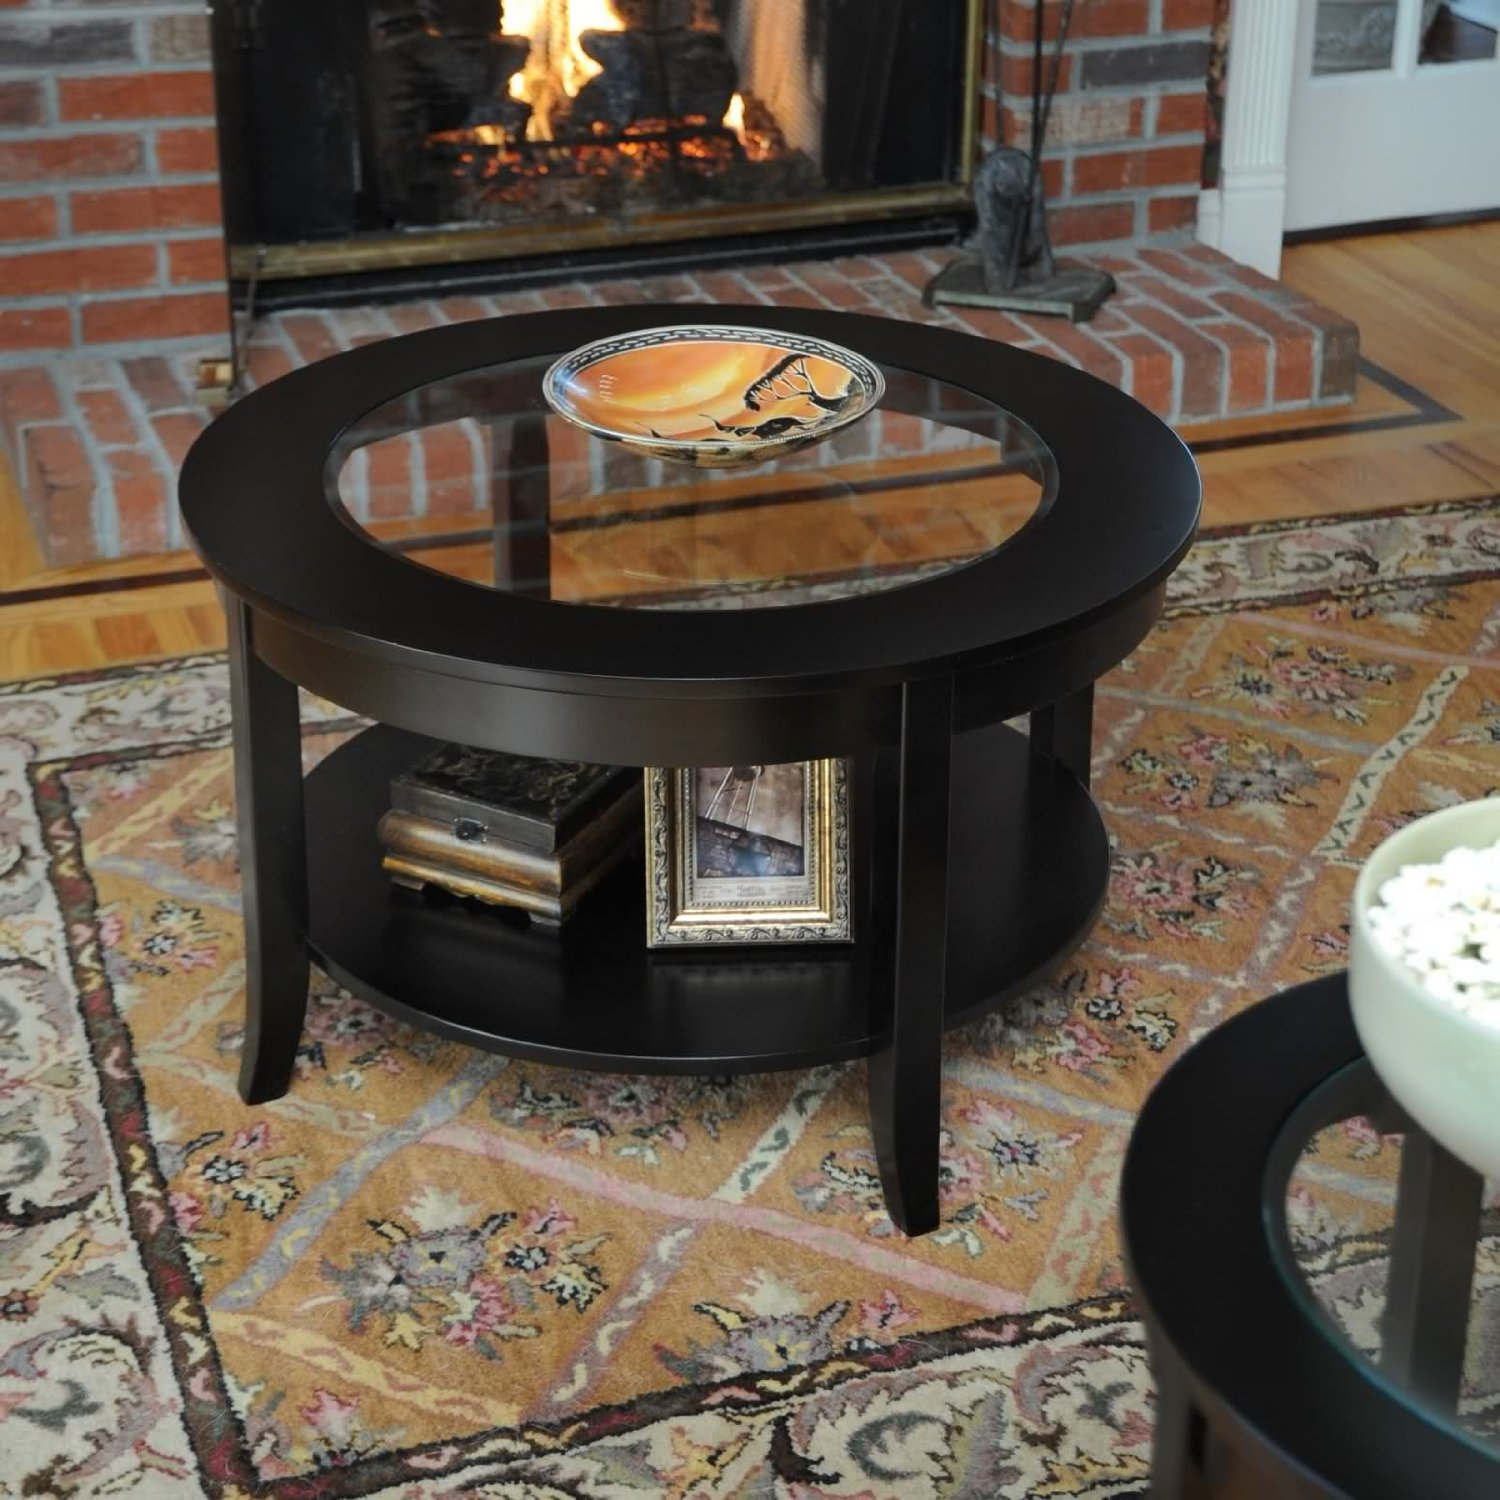 Bay-Shore-Collection-Glass-Top-Round-Coffee-Table-Black-30-Inch-Coat-Stands-30-Inch-Round-Coffee-Table (Image 2 of 9)